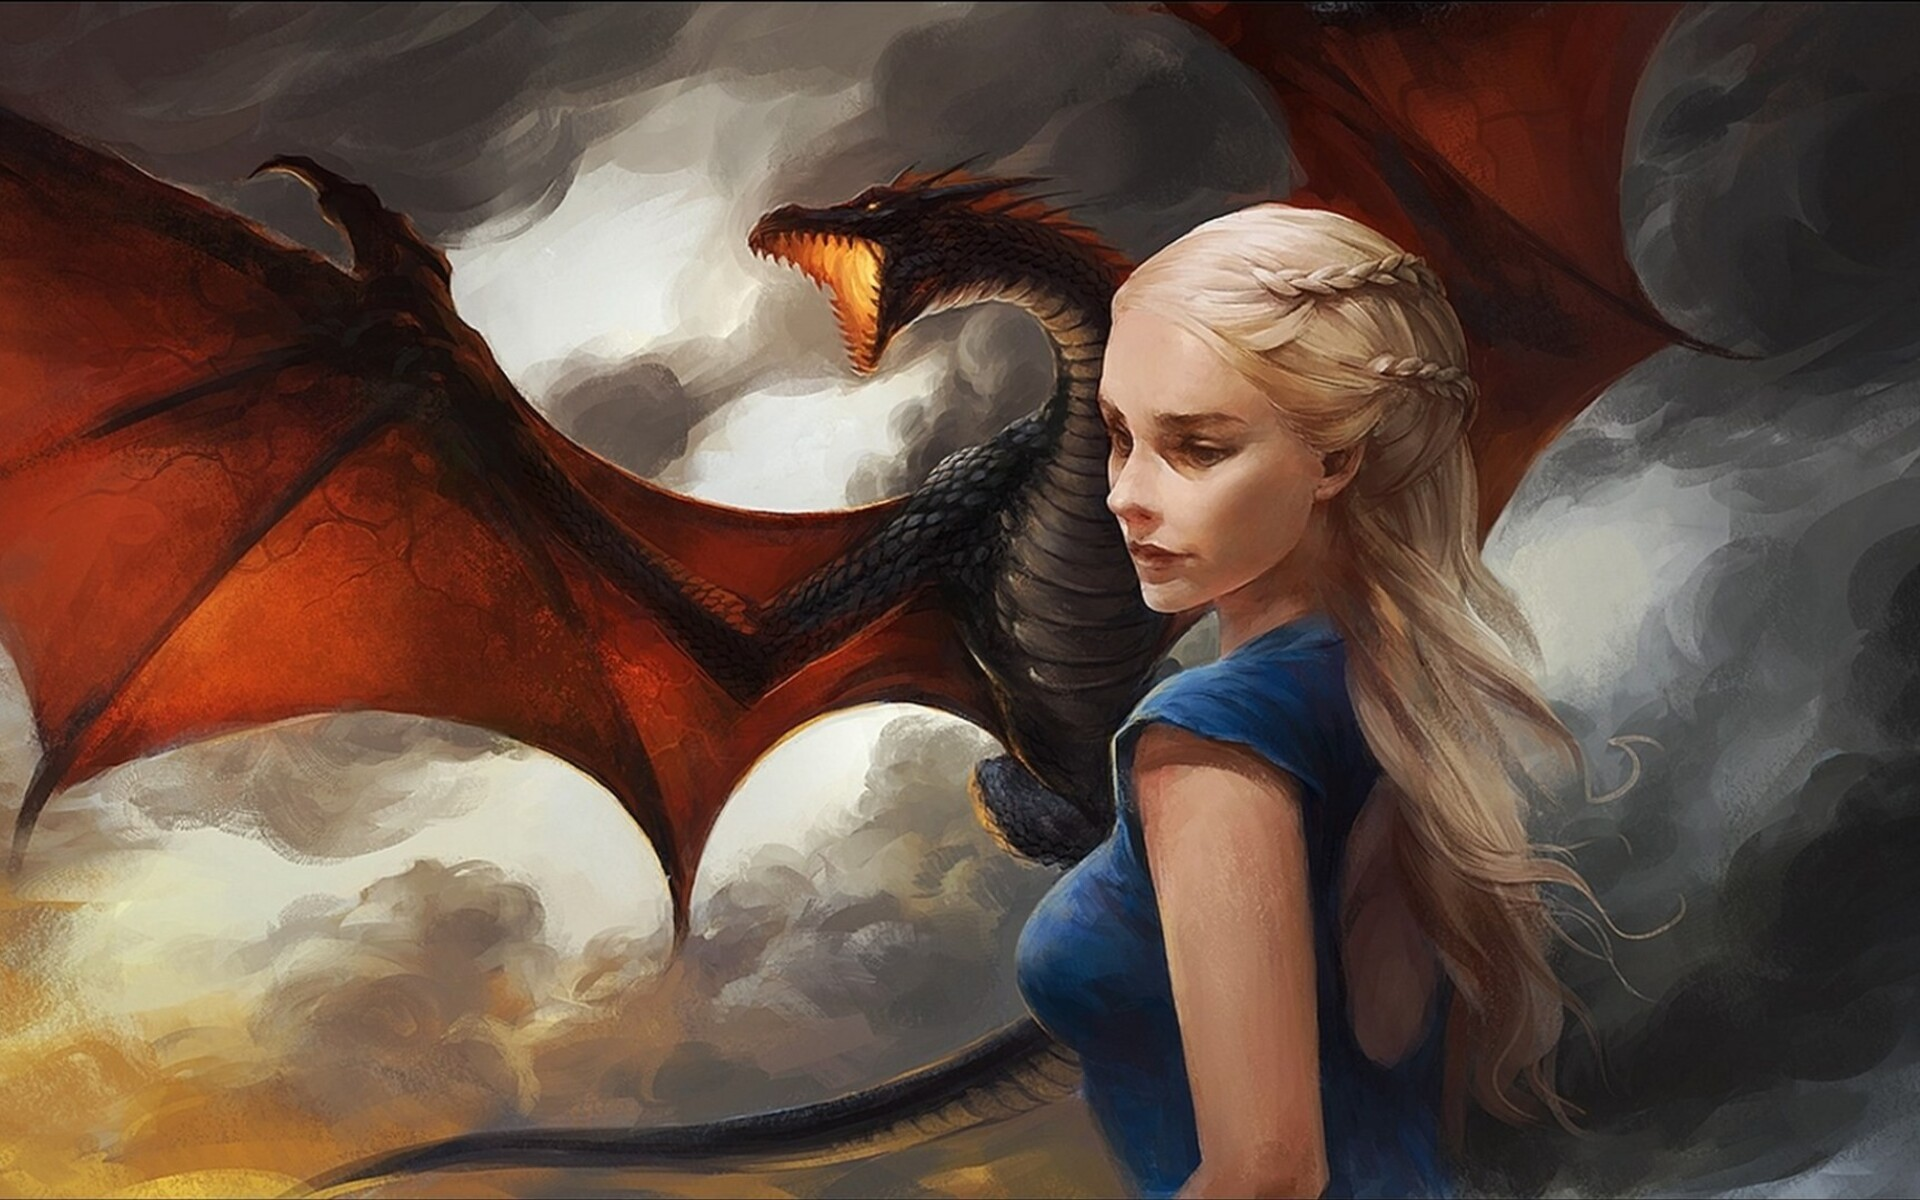 khaleesi-game-of-thrones-with-dragon-artwork-lu.jpg